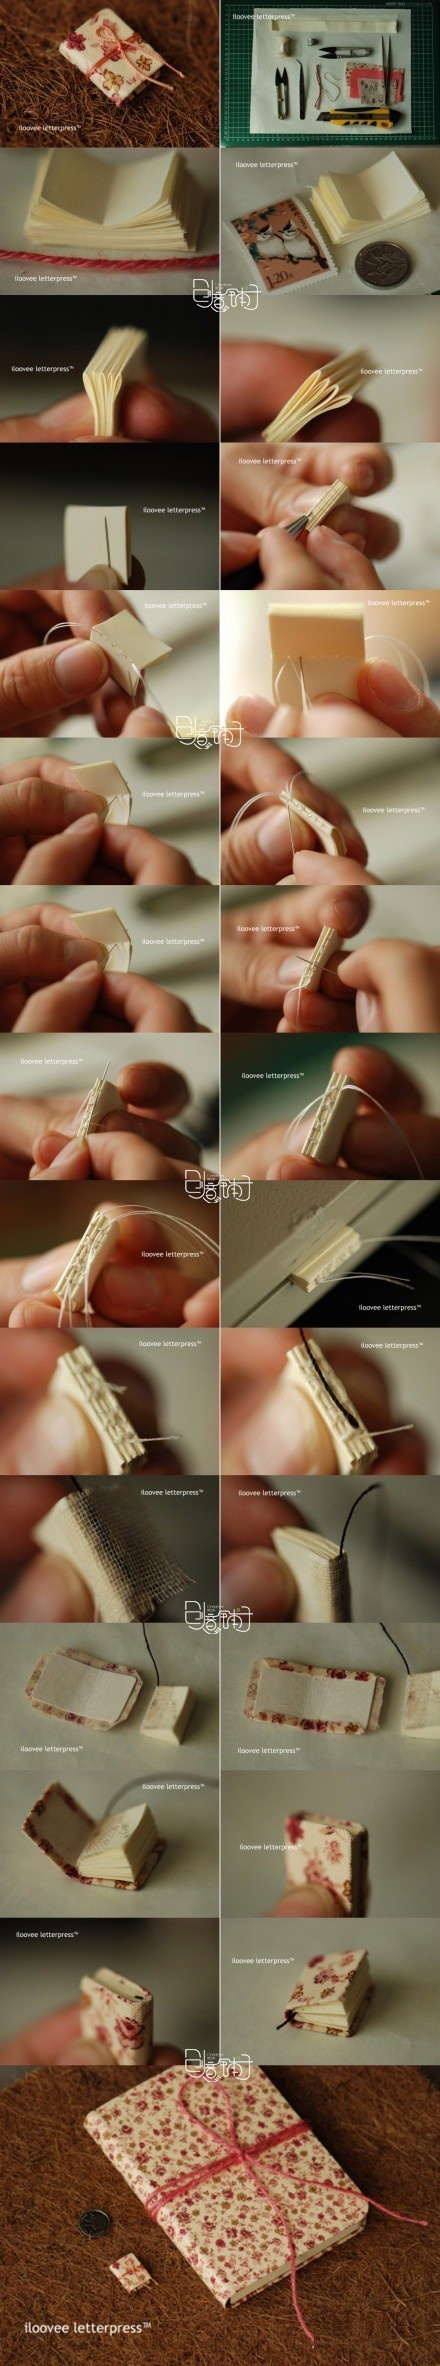 DIY.. Its so little and cute c: